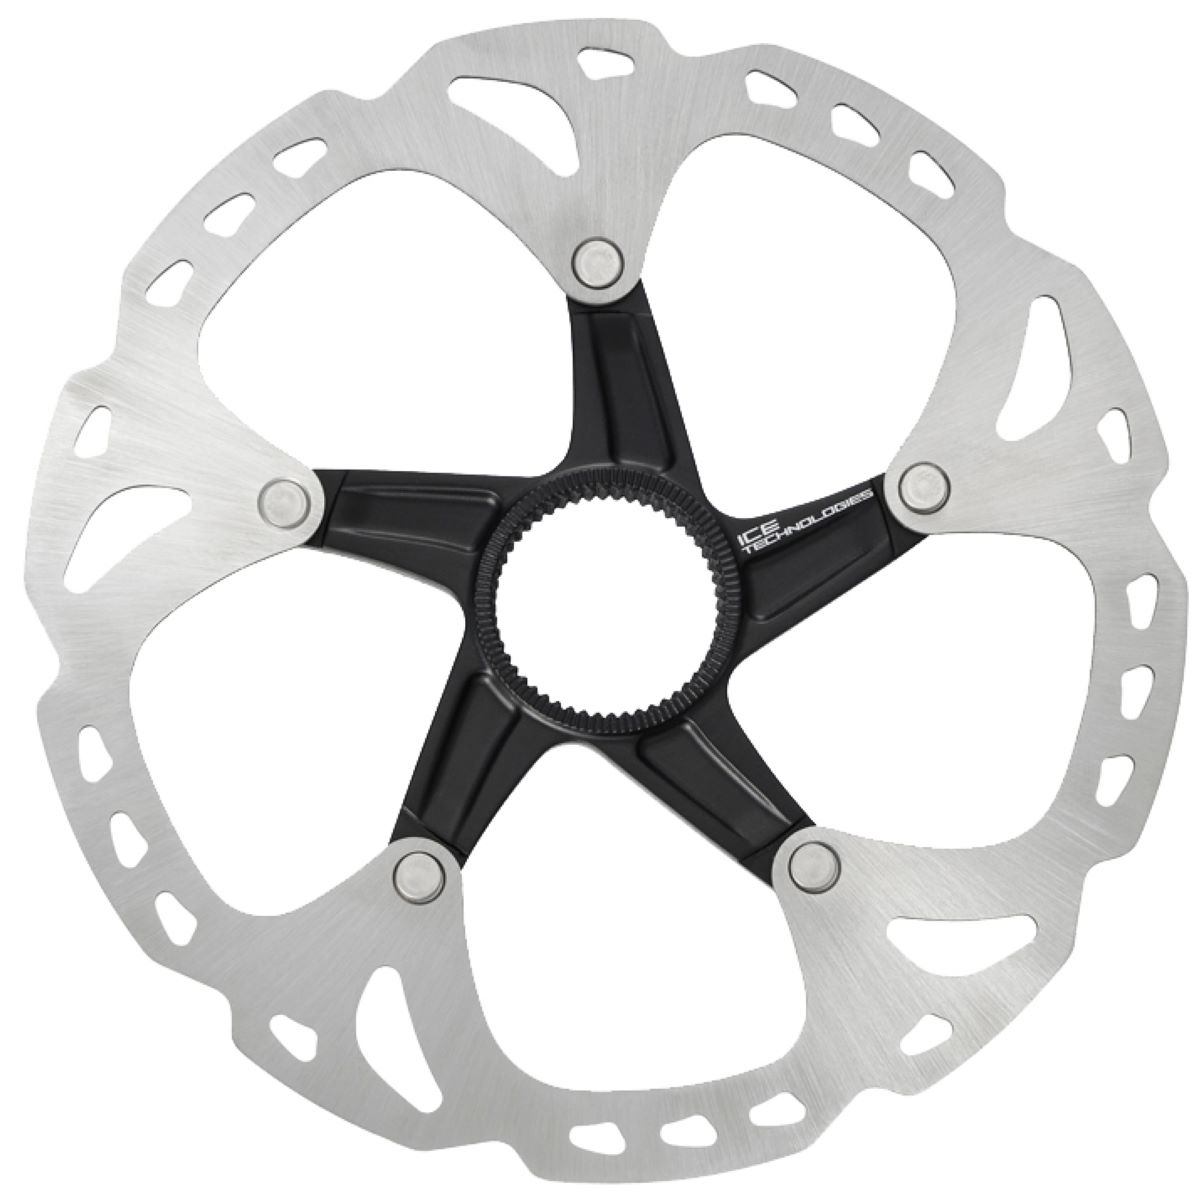 Disque Shimano XT et Saint RT81 Ice-Tec (160 mm, CL) - 160mm Centre-Lock Silver Grey/Black Disques de freins